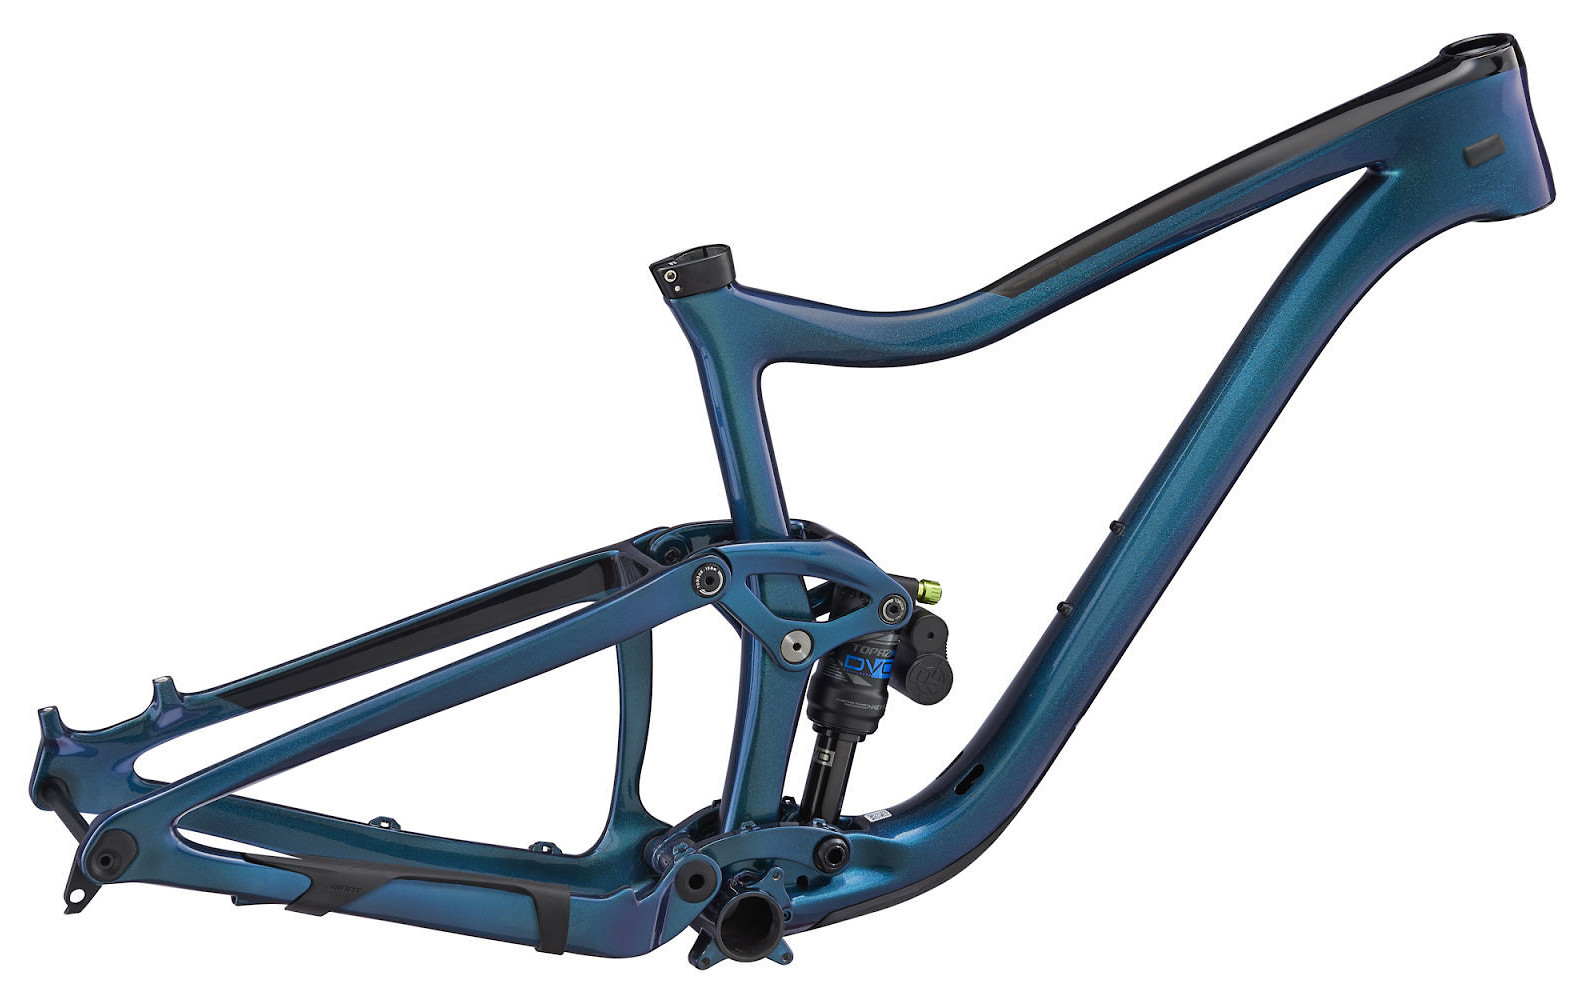 Giant Trance Advanced Pro 29